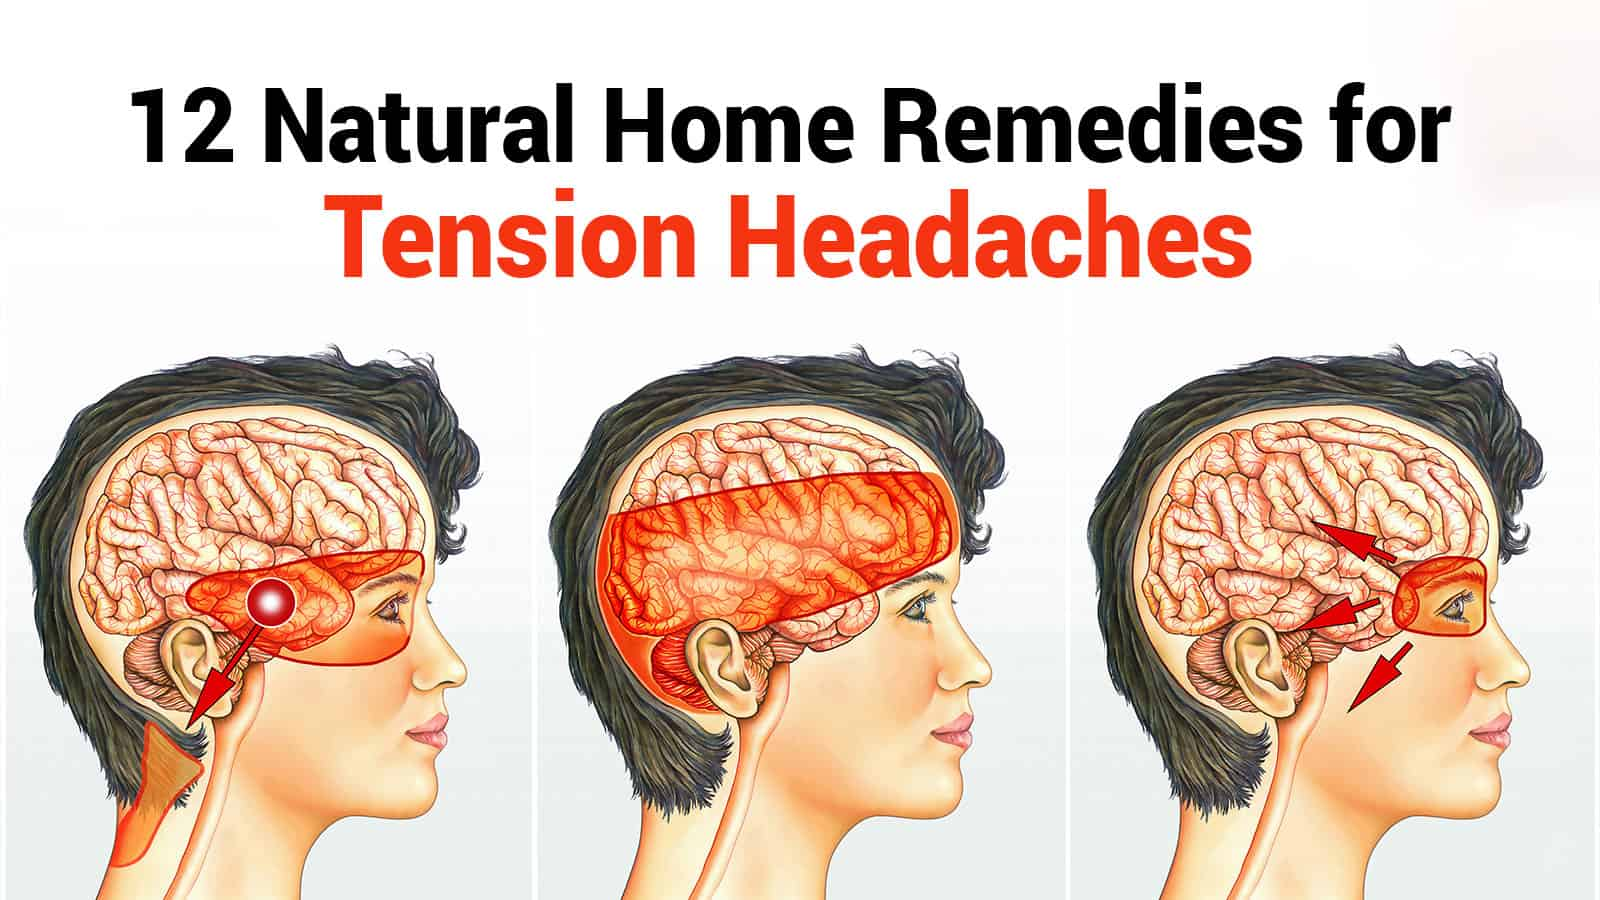 12 Natural Home Remedies for Tension Headaches | 5 Minute Read